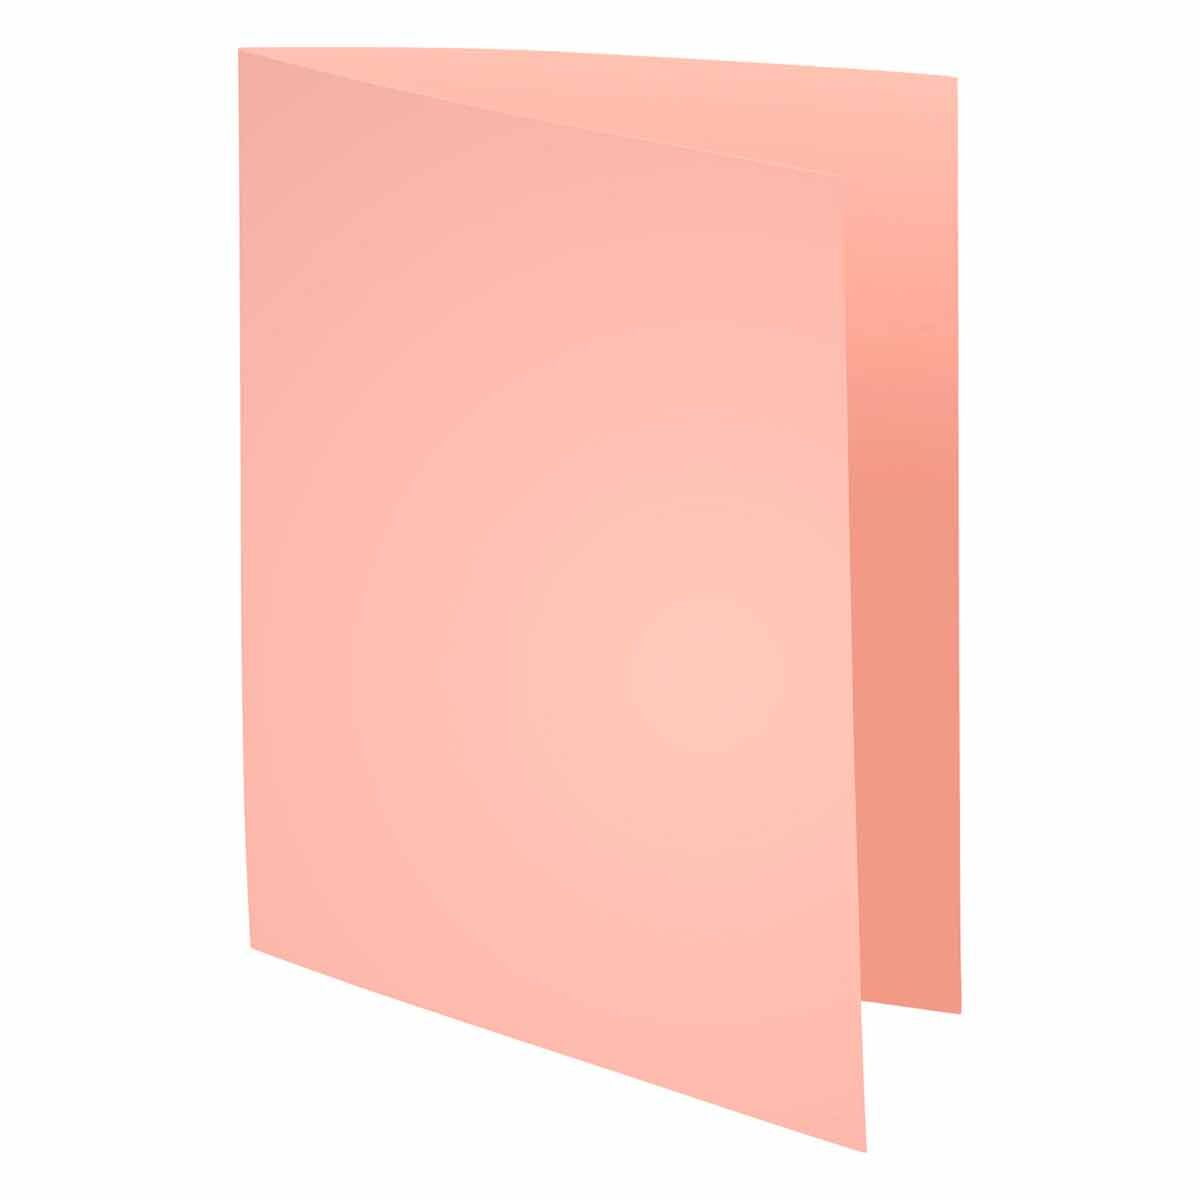 Exacompta Forever Square Cut Folders A4 220gsm Pack of 500 Pink